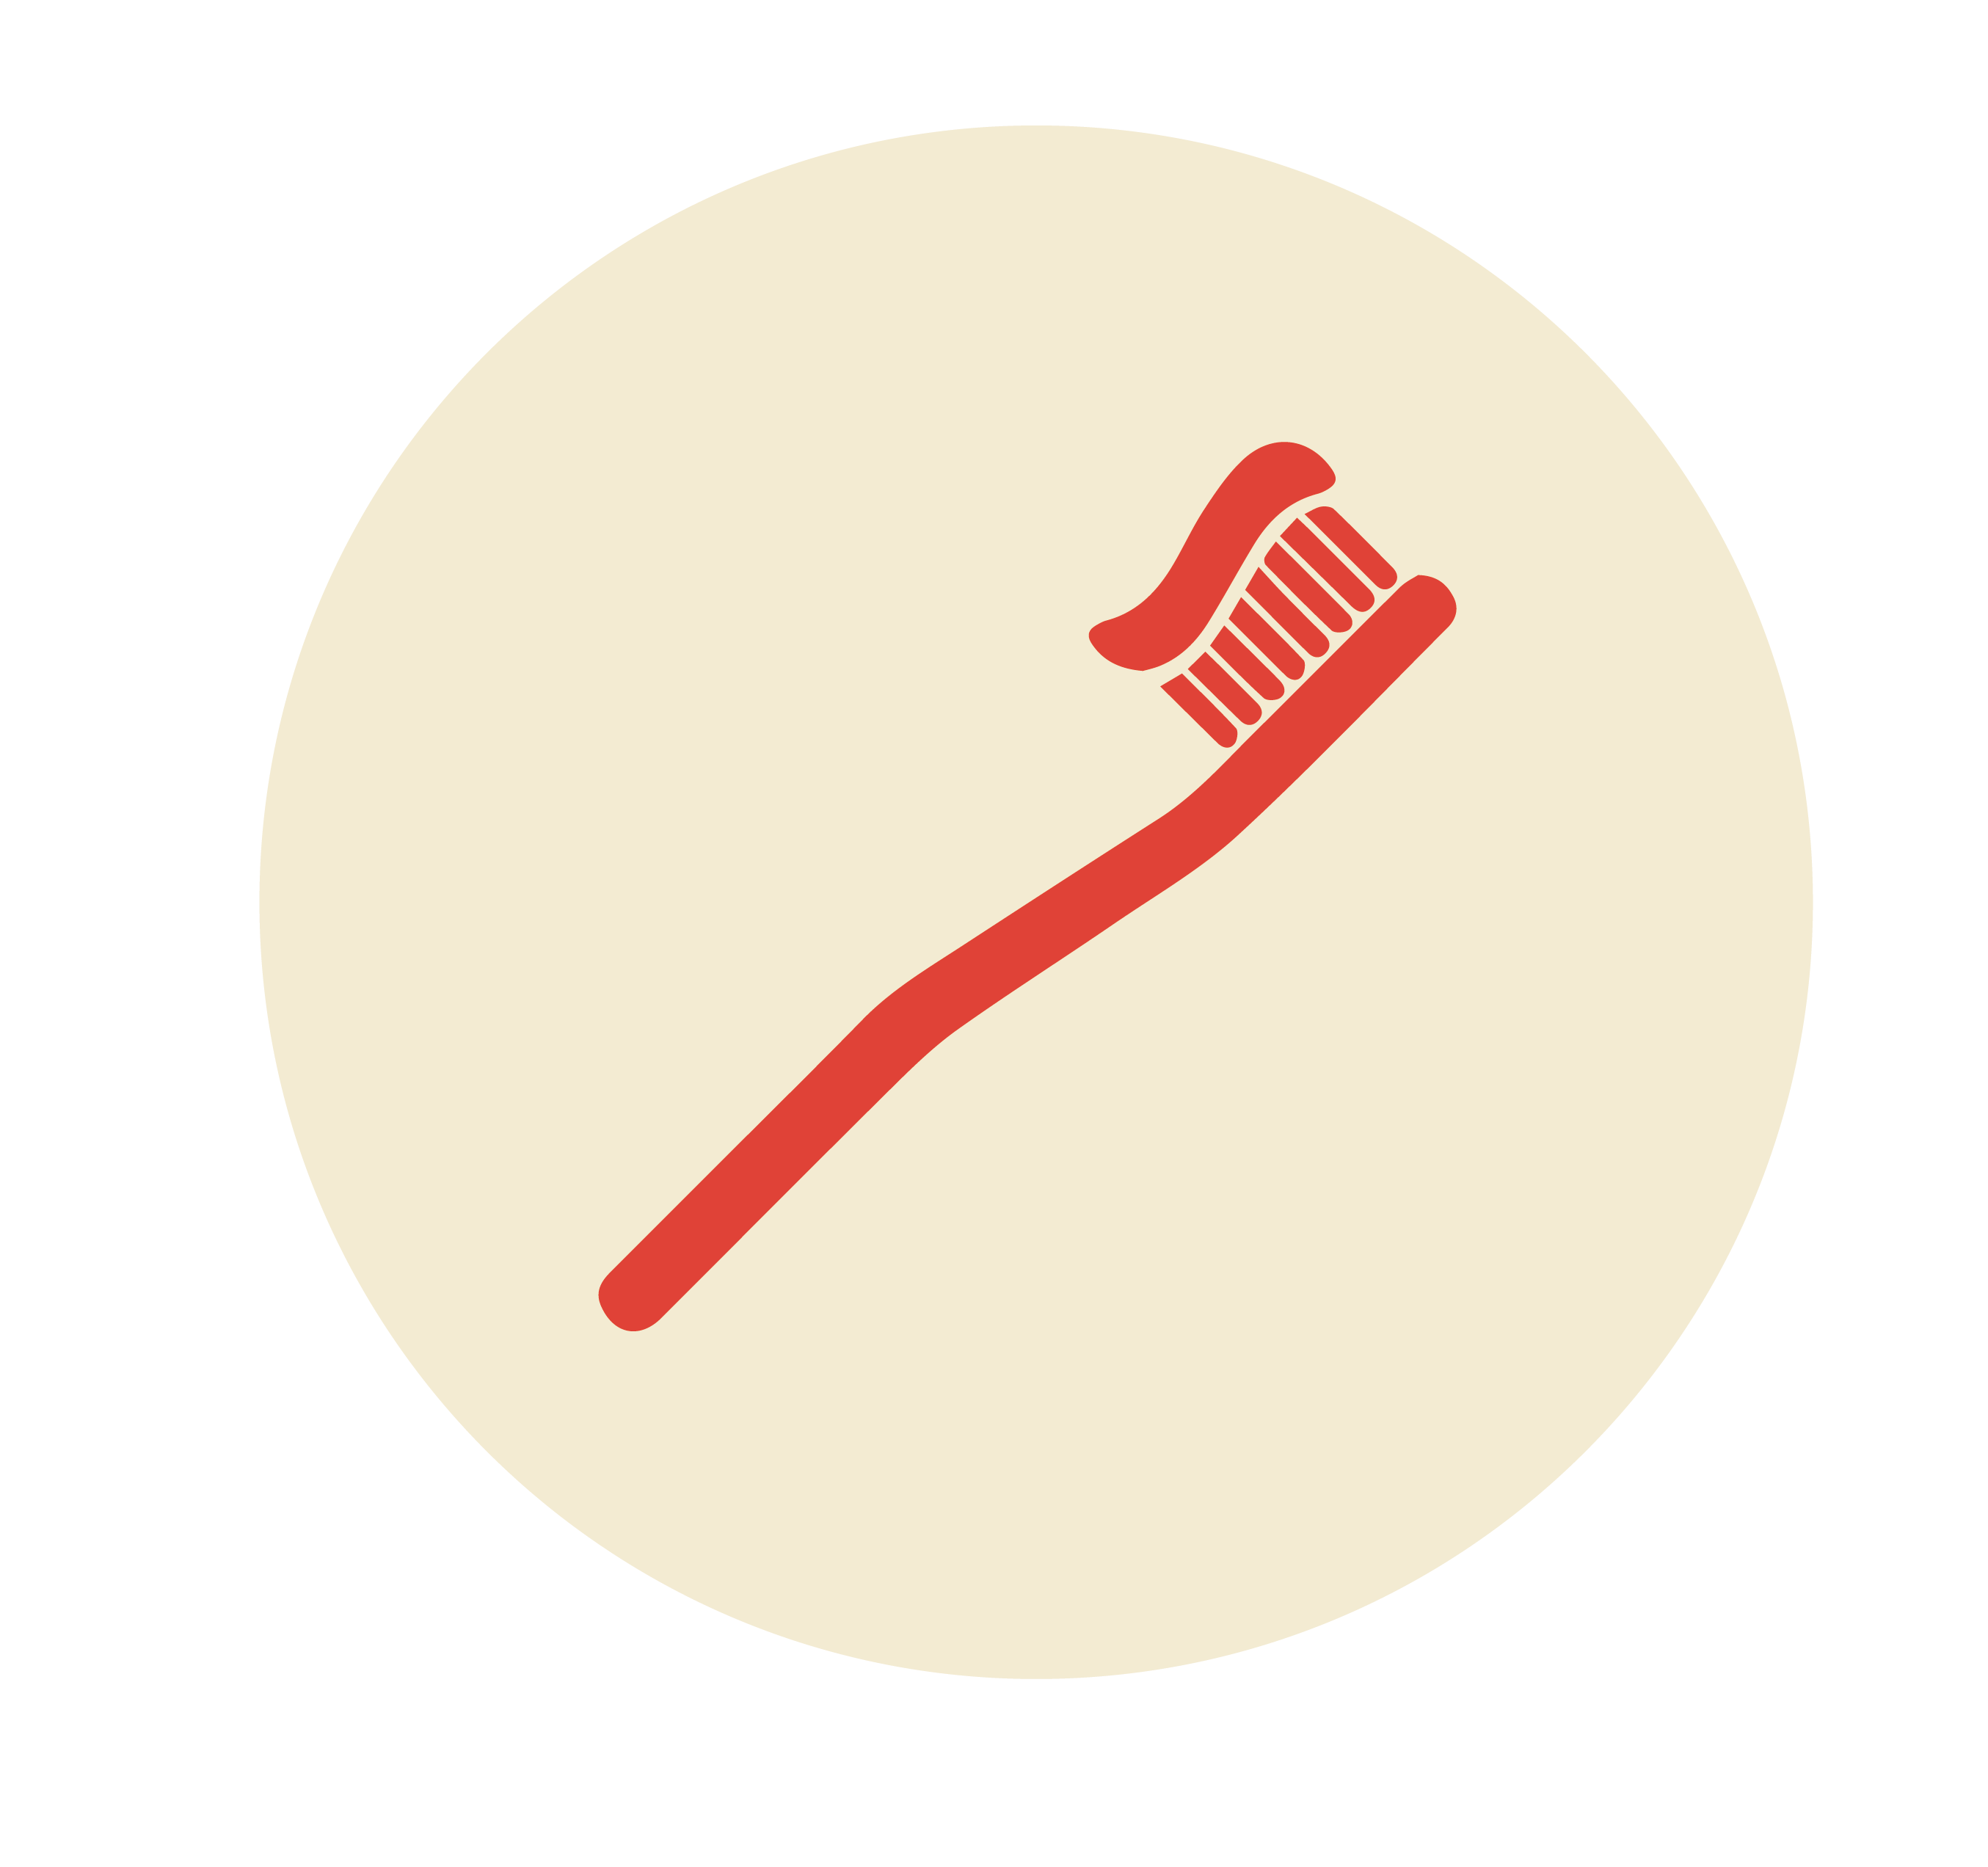 tooth brush-01.png